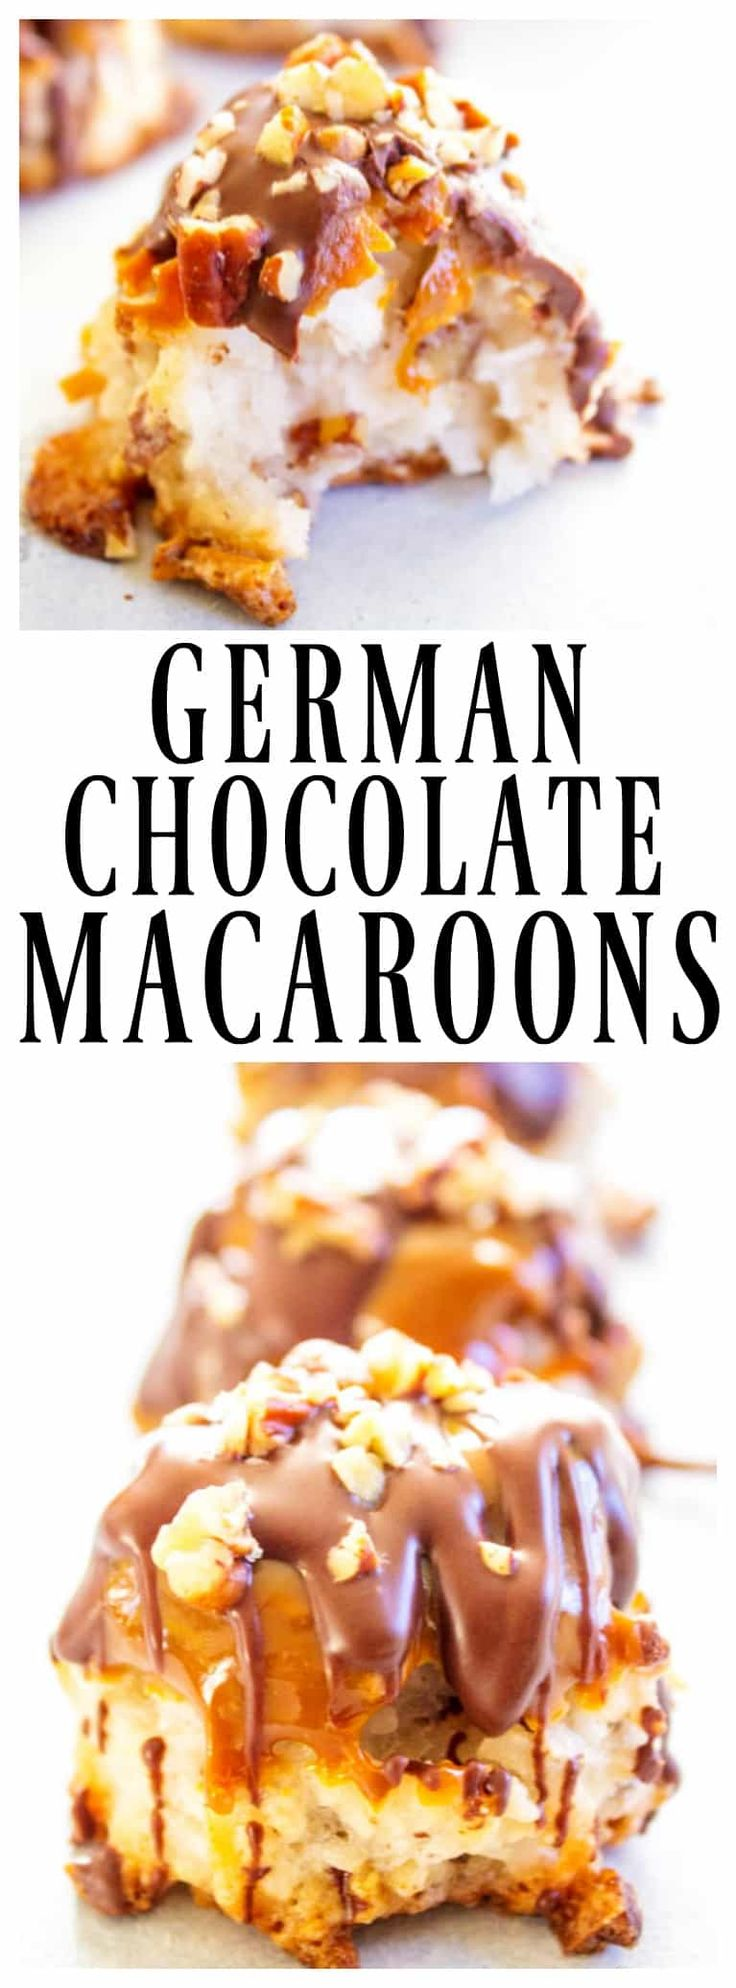 GERMAN CHOCOLATE MACAROONS - Loaded with coconut & pecans, dipped in caramel & drizzled with chocolate; this drool worthy cookie is a holiday must have.